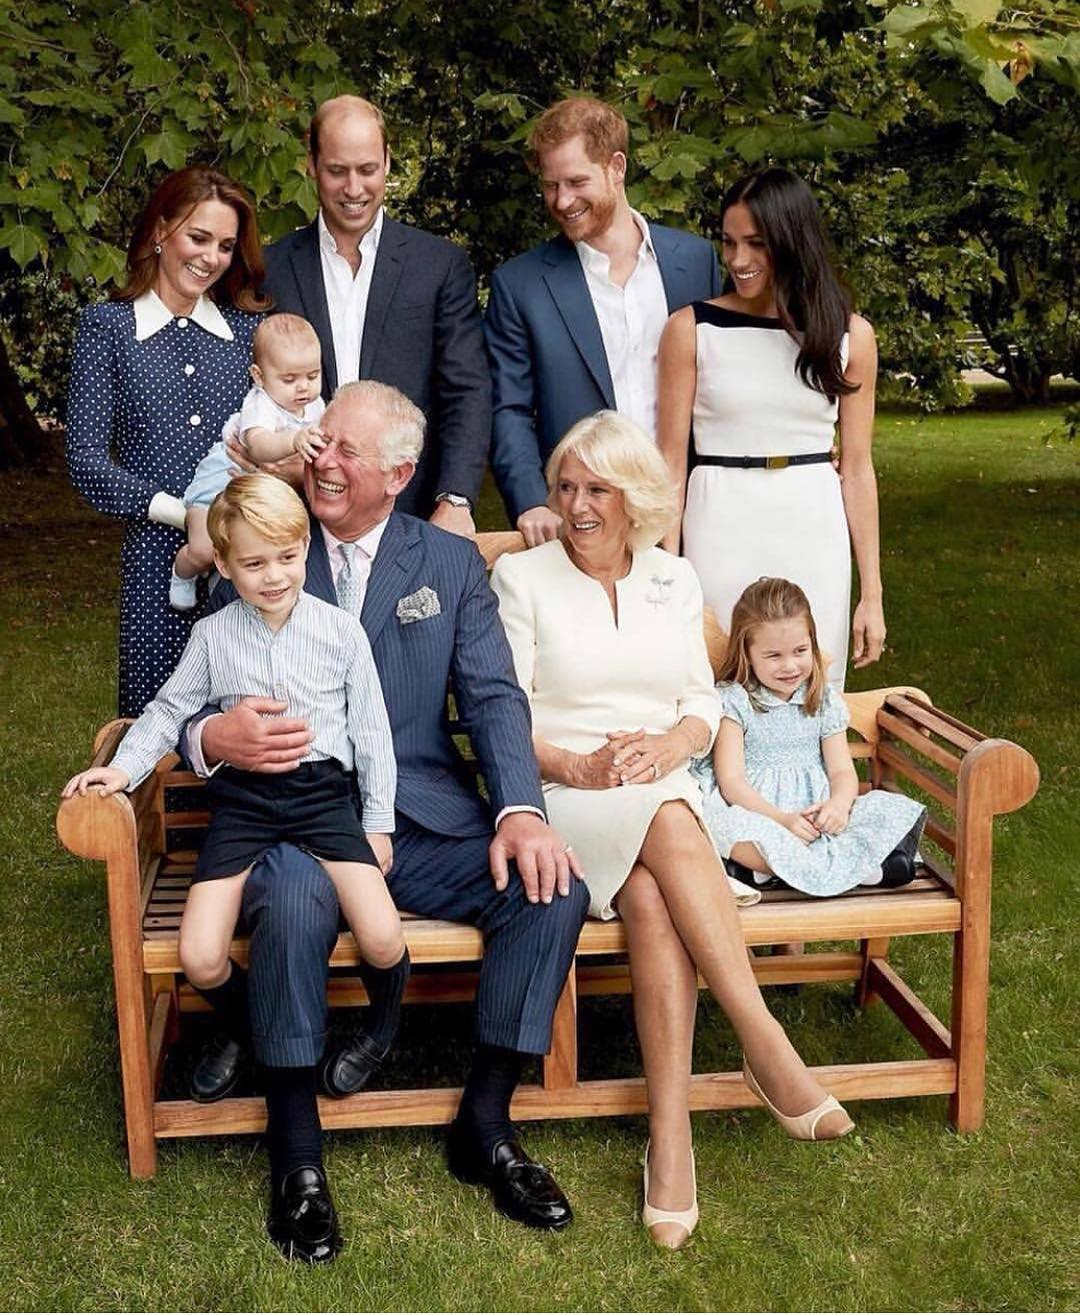 The rumors about this rift seemingly started taking shape when the palace confirmed that Prince Harry and Meghan would be moving to Frogmore cottage on the Windsor estate as the soon-to-be parents prepare to welcome their child. (Source: Getty Images)